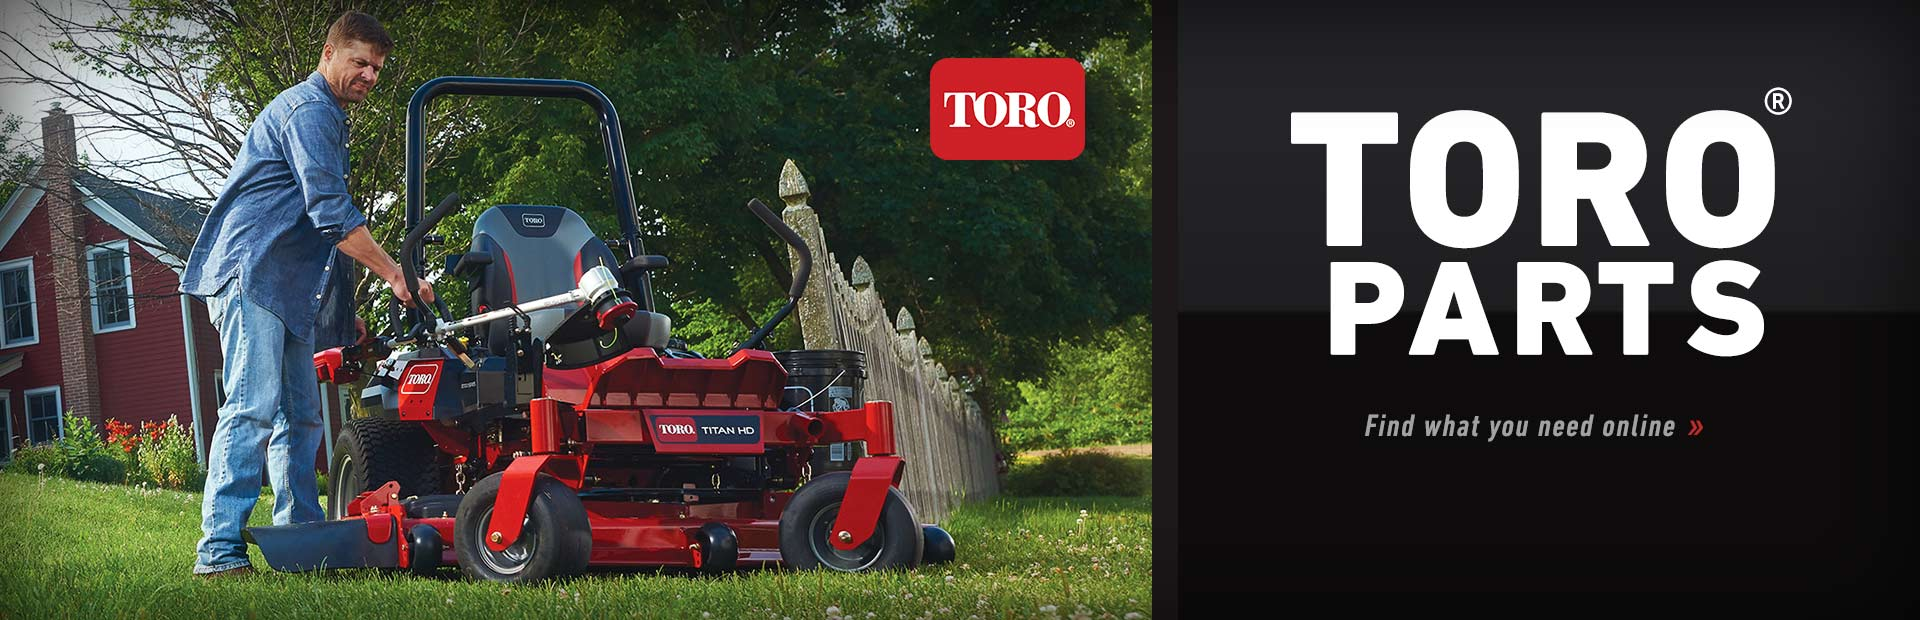 Toro Parts: Click here to find what you need online.